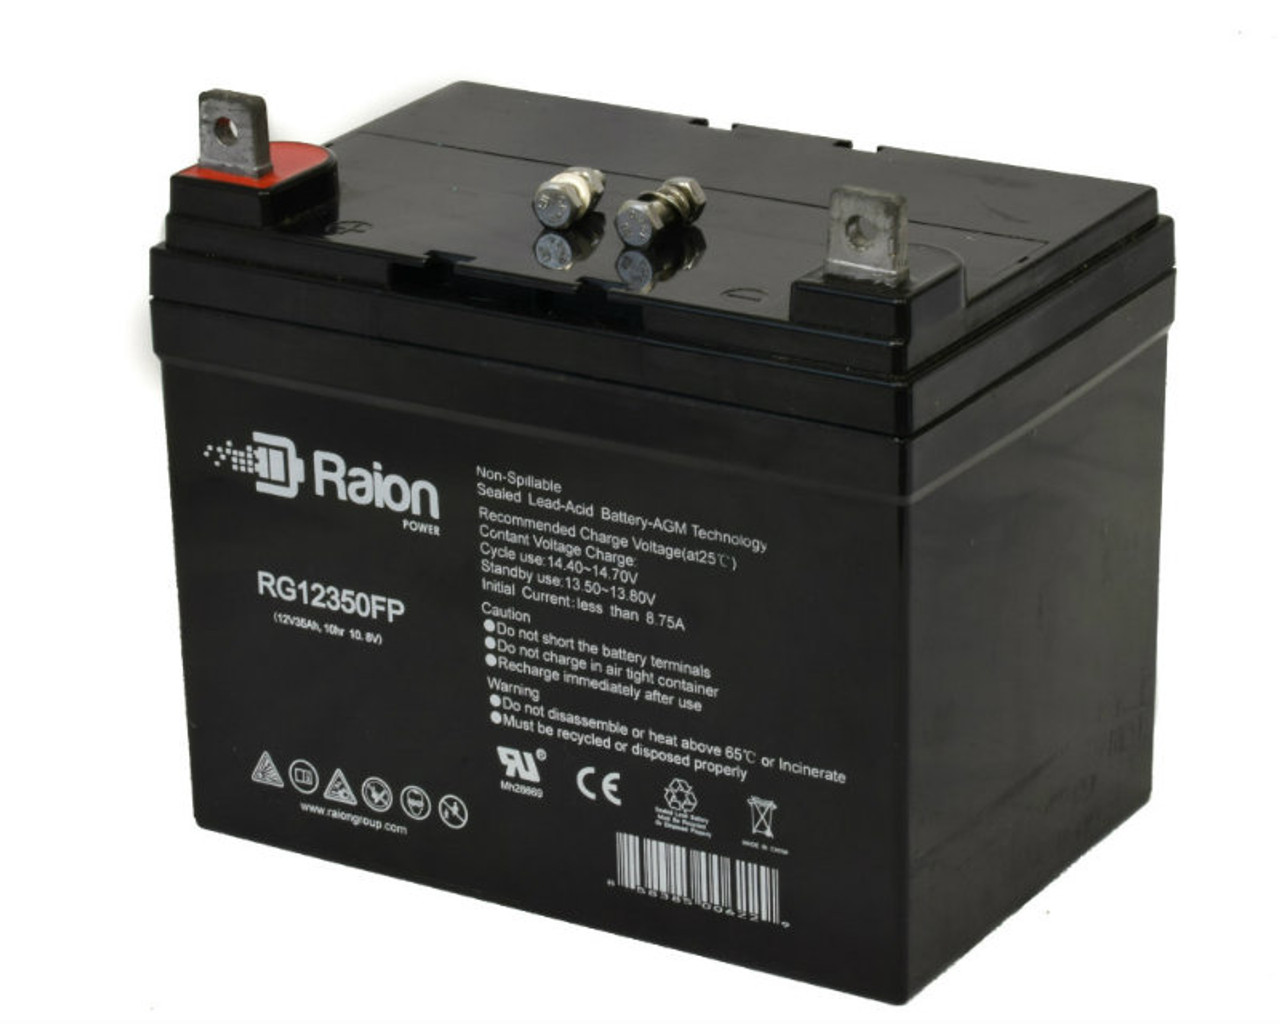 Raion Power RG12350FP Replacement Wheelchair Battery For Fortress Scooters 2000 Mini U1 (1 Pack)